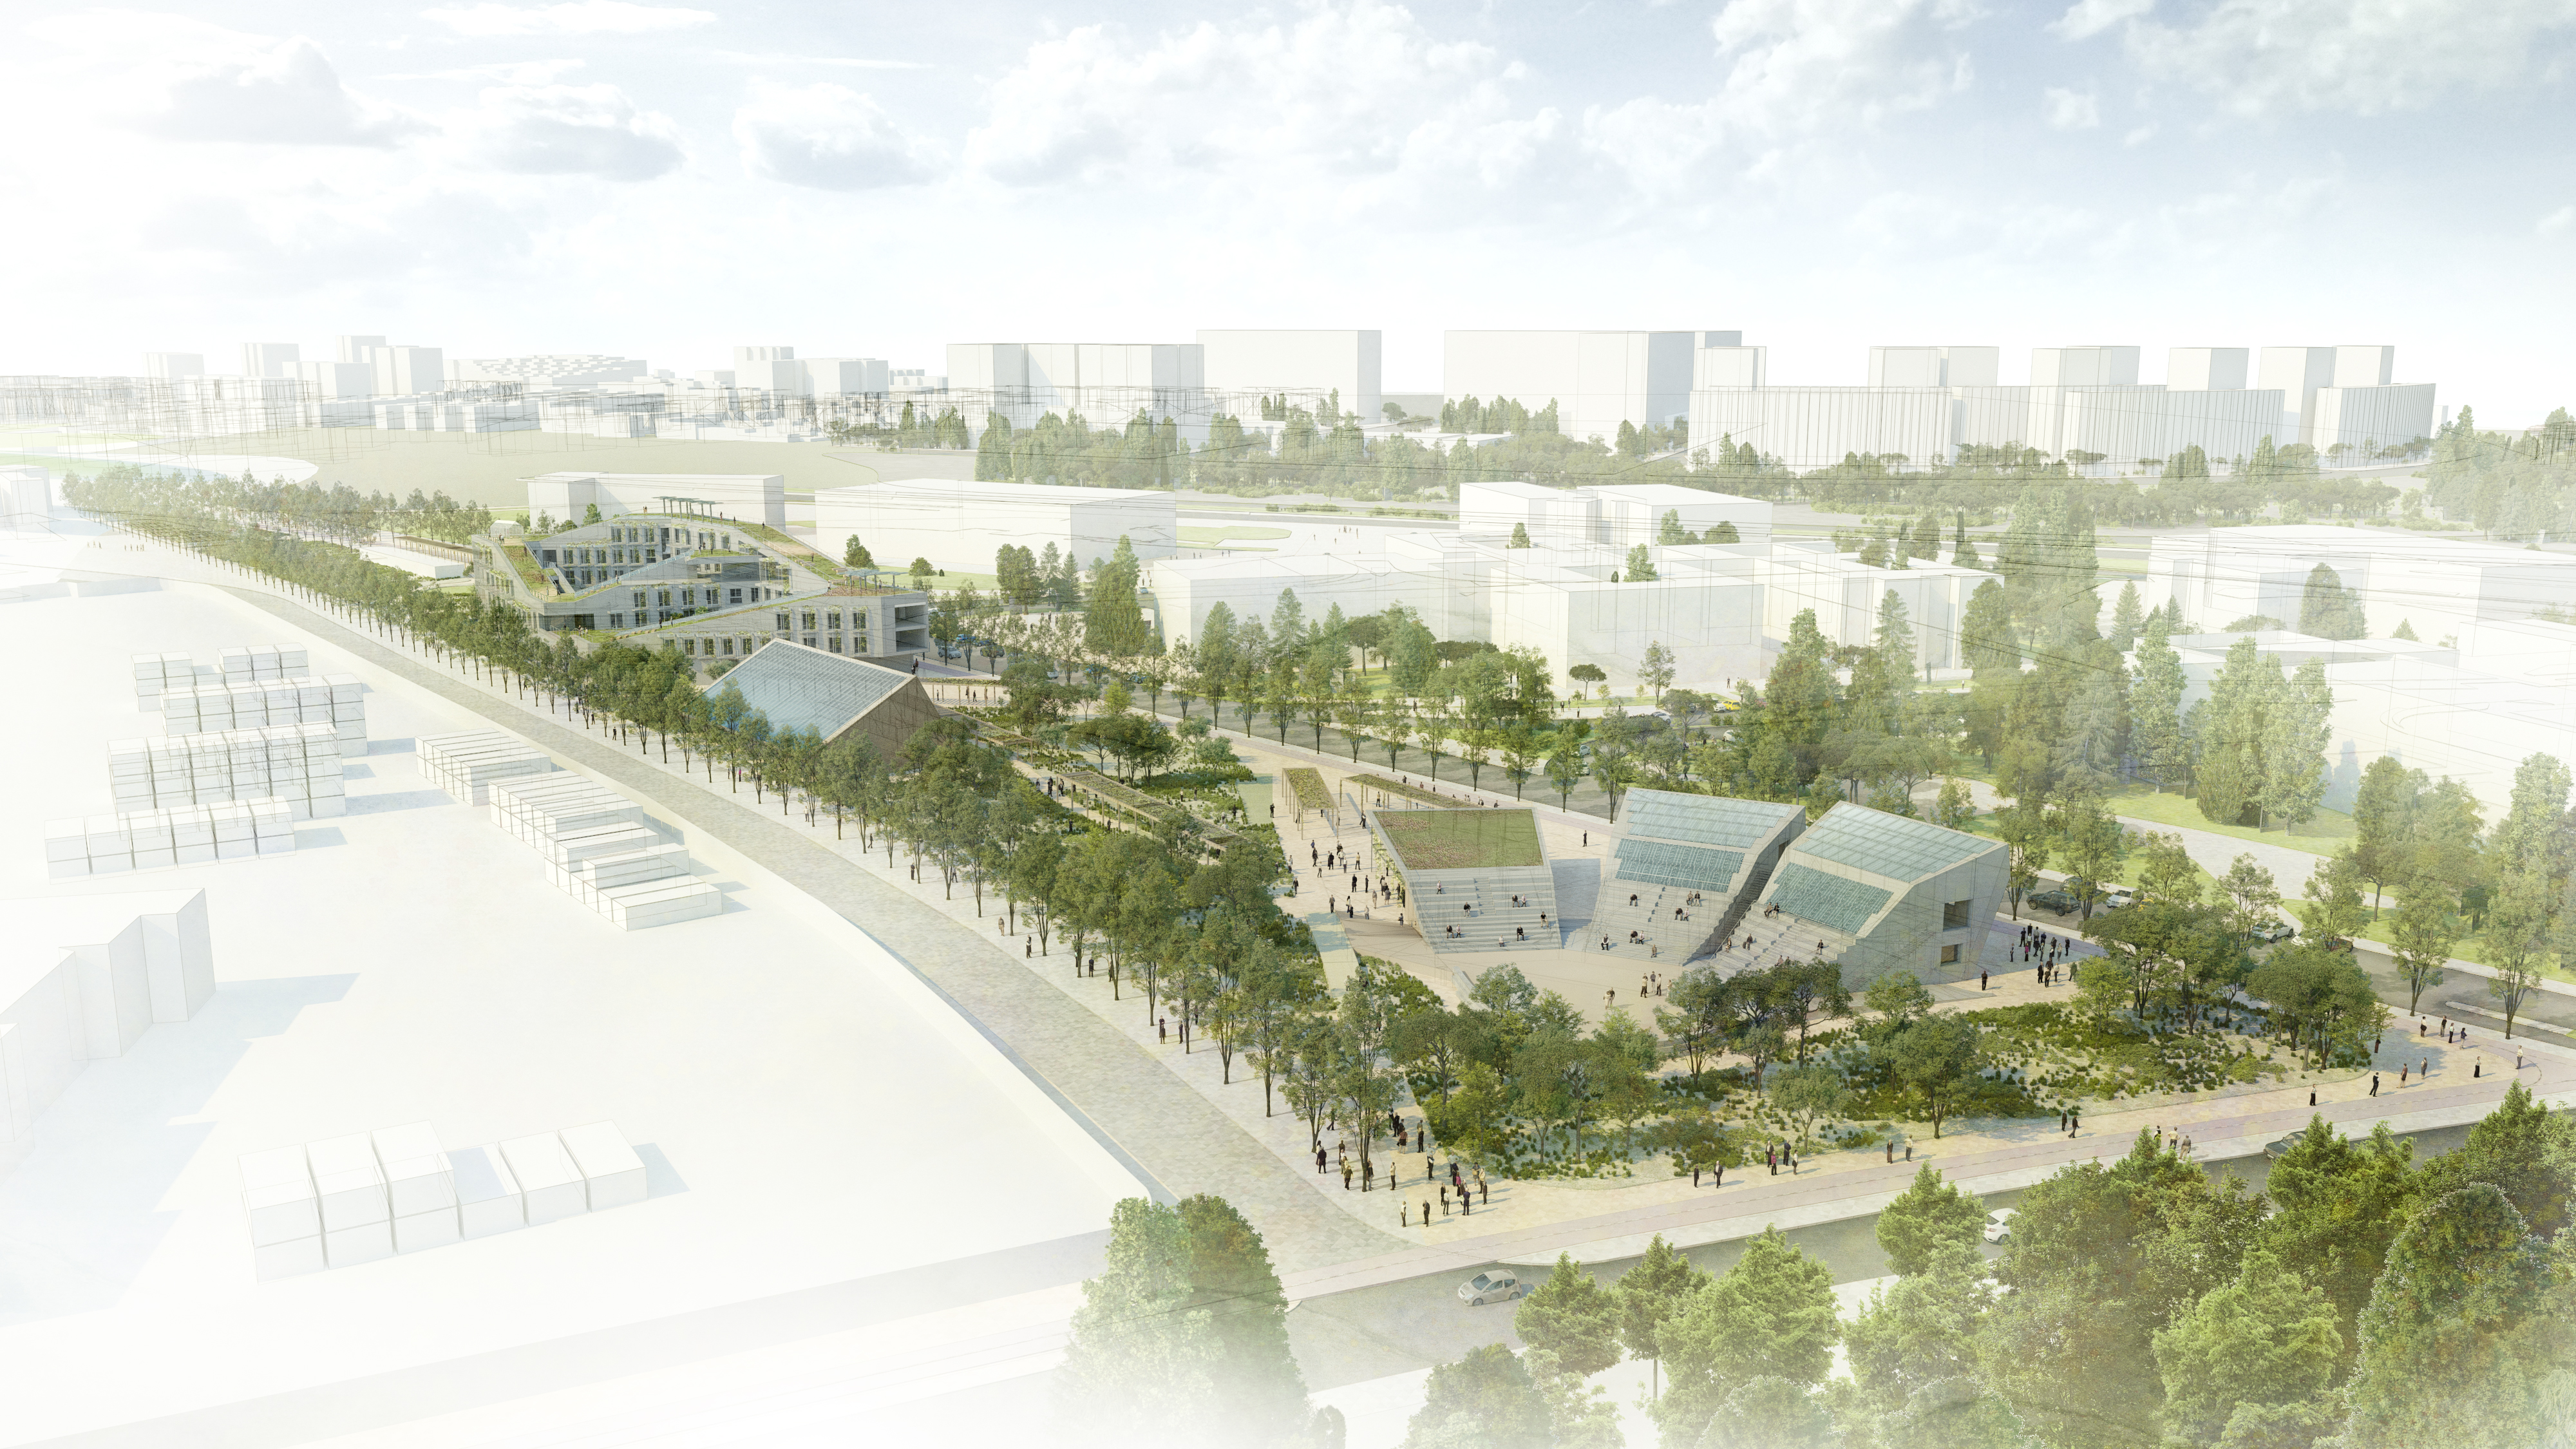 Reinventing Cities-Campus for Living Cities - general View